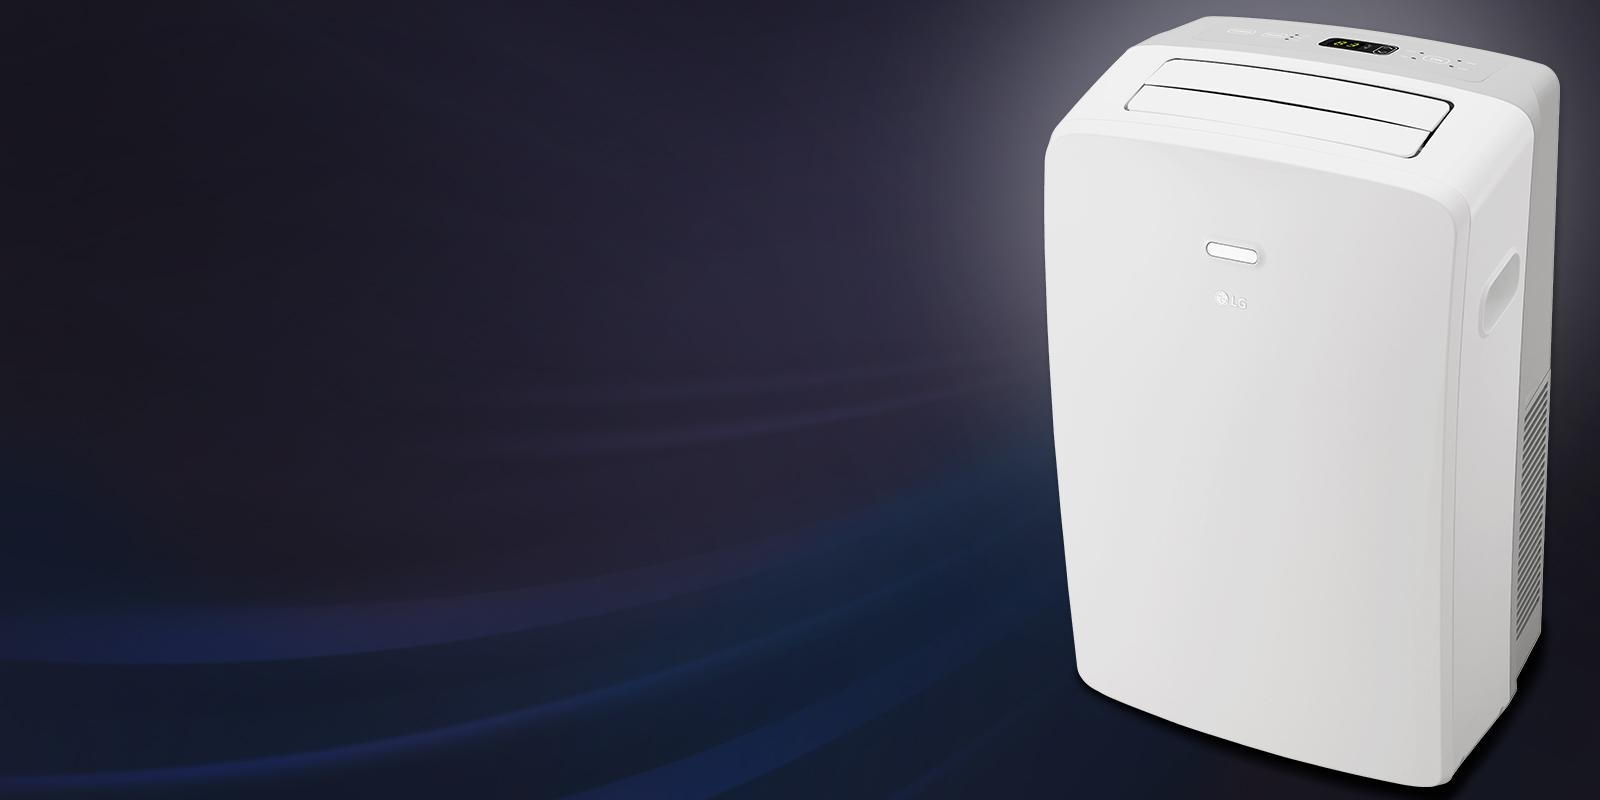 Front view of an LG portable air conditioner.